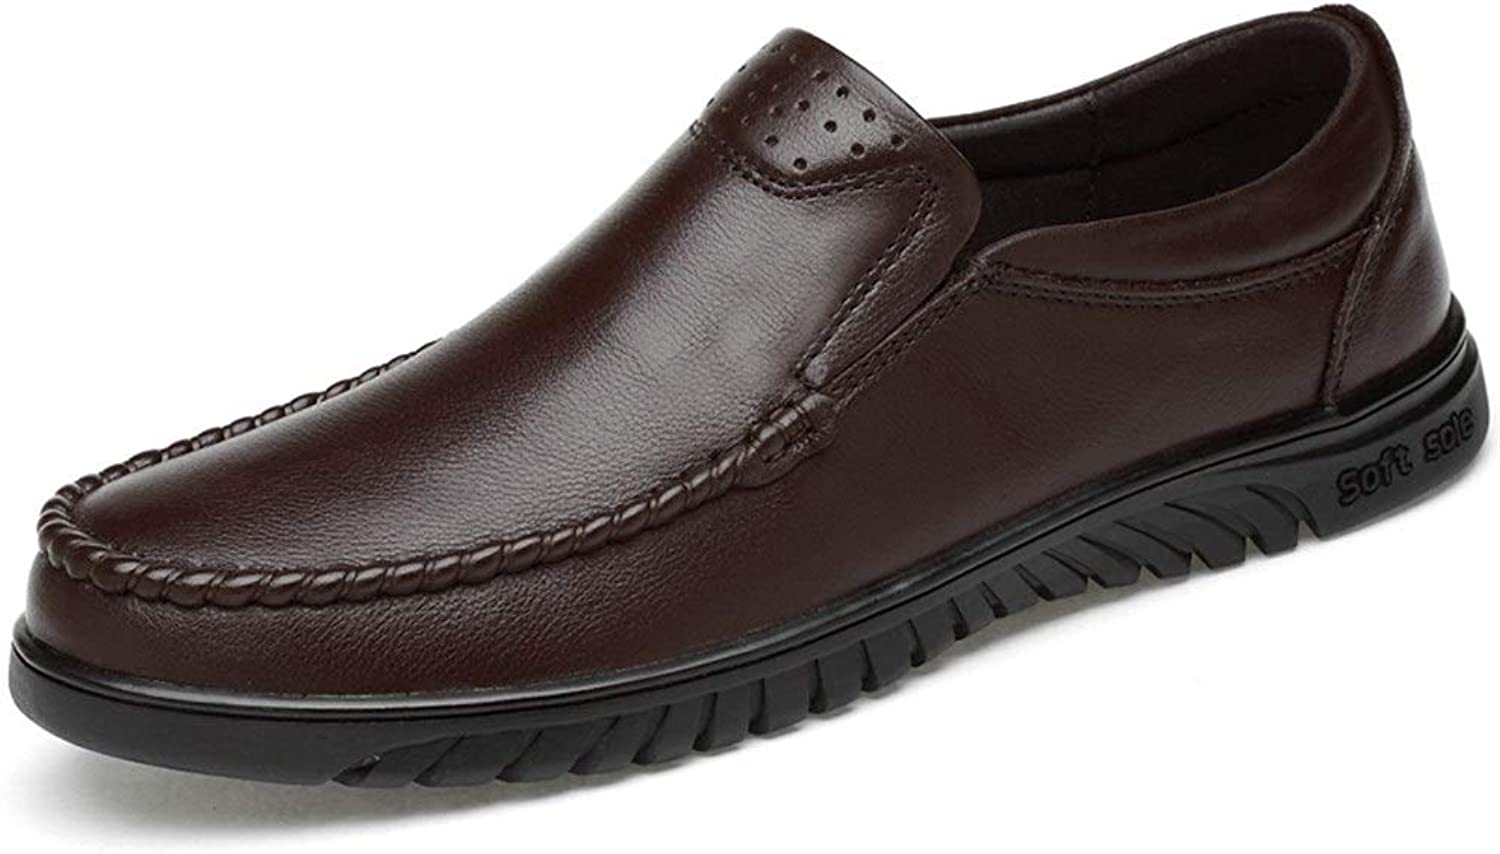 MUMUWU Men Oxford Formal shoes Slip On OX Leather Solid color Outsole Round Toe(Fleece Inside Or Balck Hollow Optional) (color   Brown, Size   9 D(M) US)